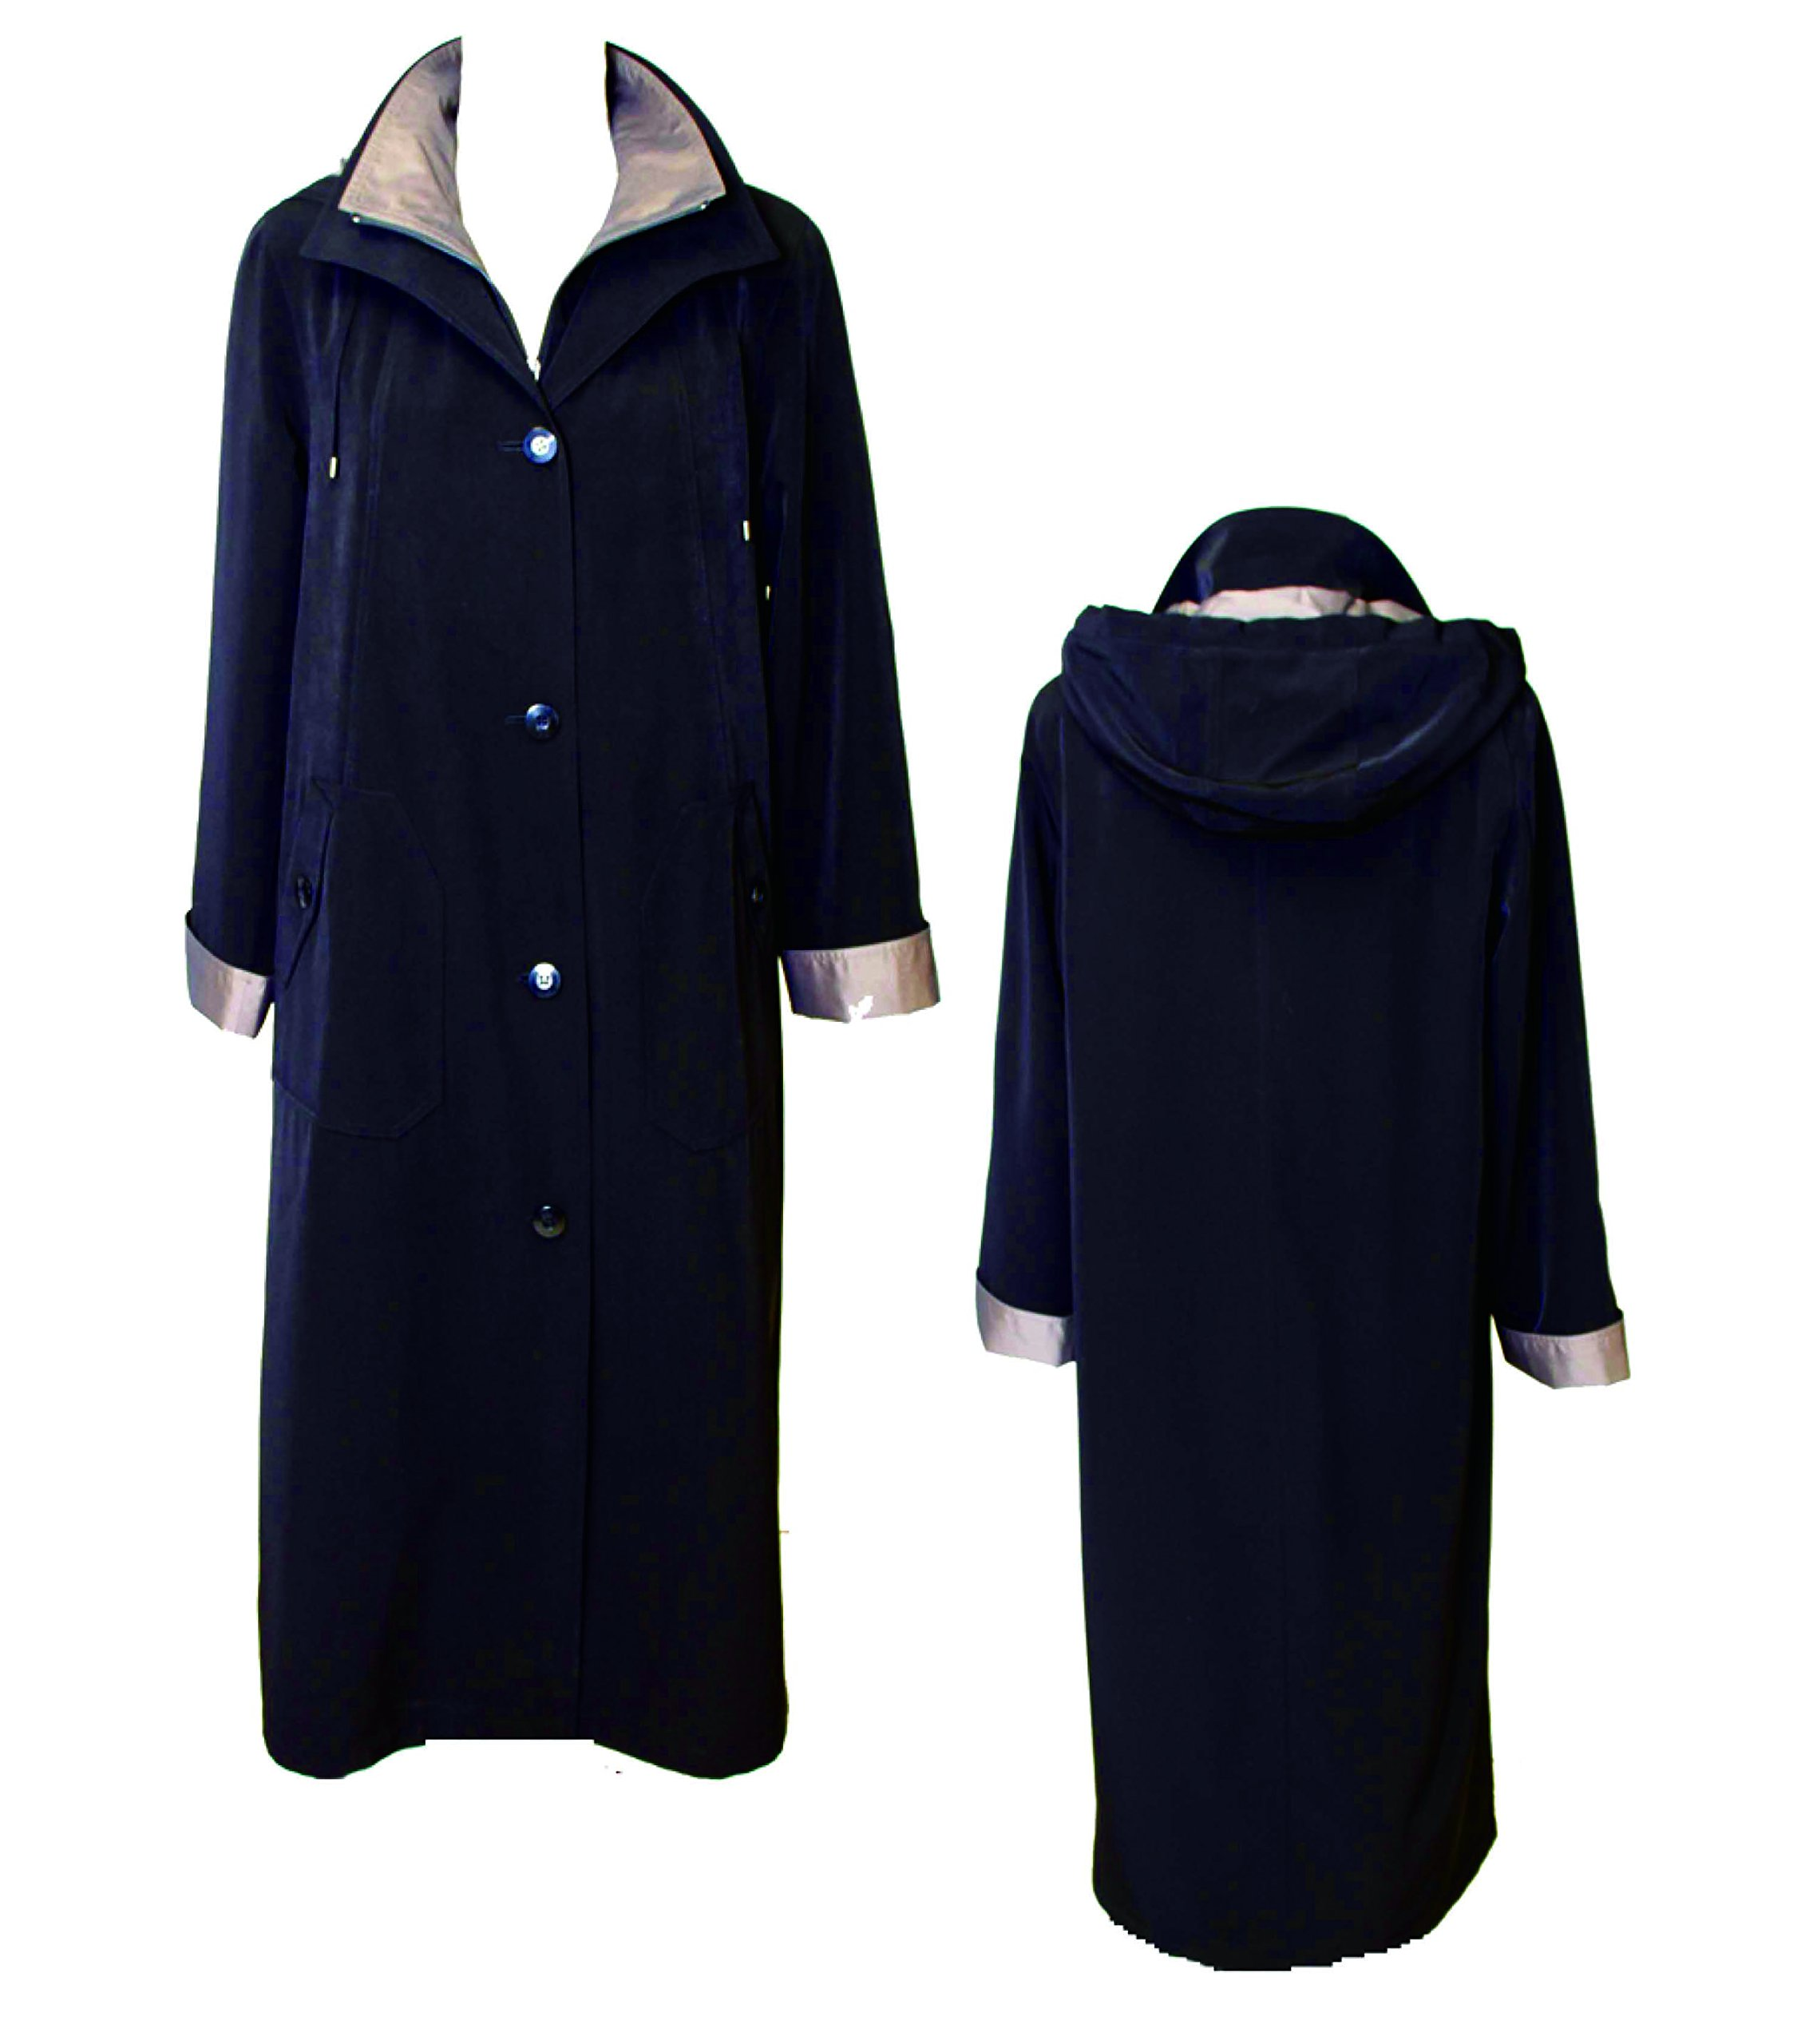 Gallery Women's Full Length Button Front Raincoat, Detachable Hood, Black, X Large by Gallery